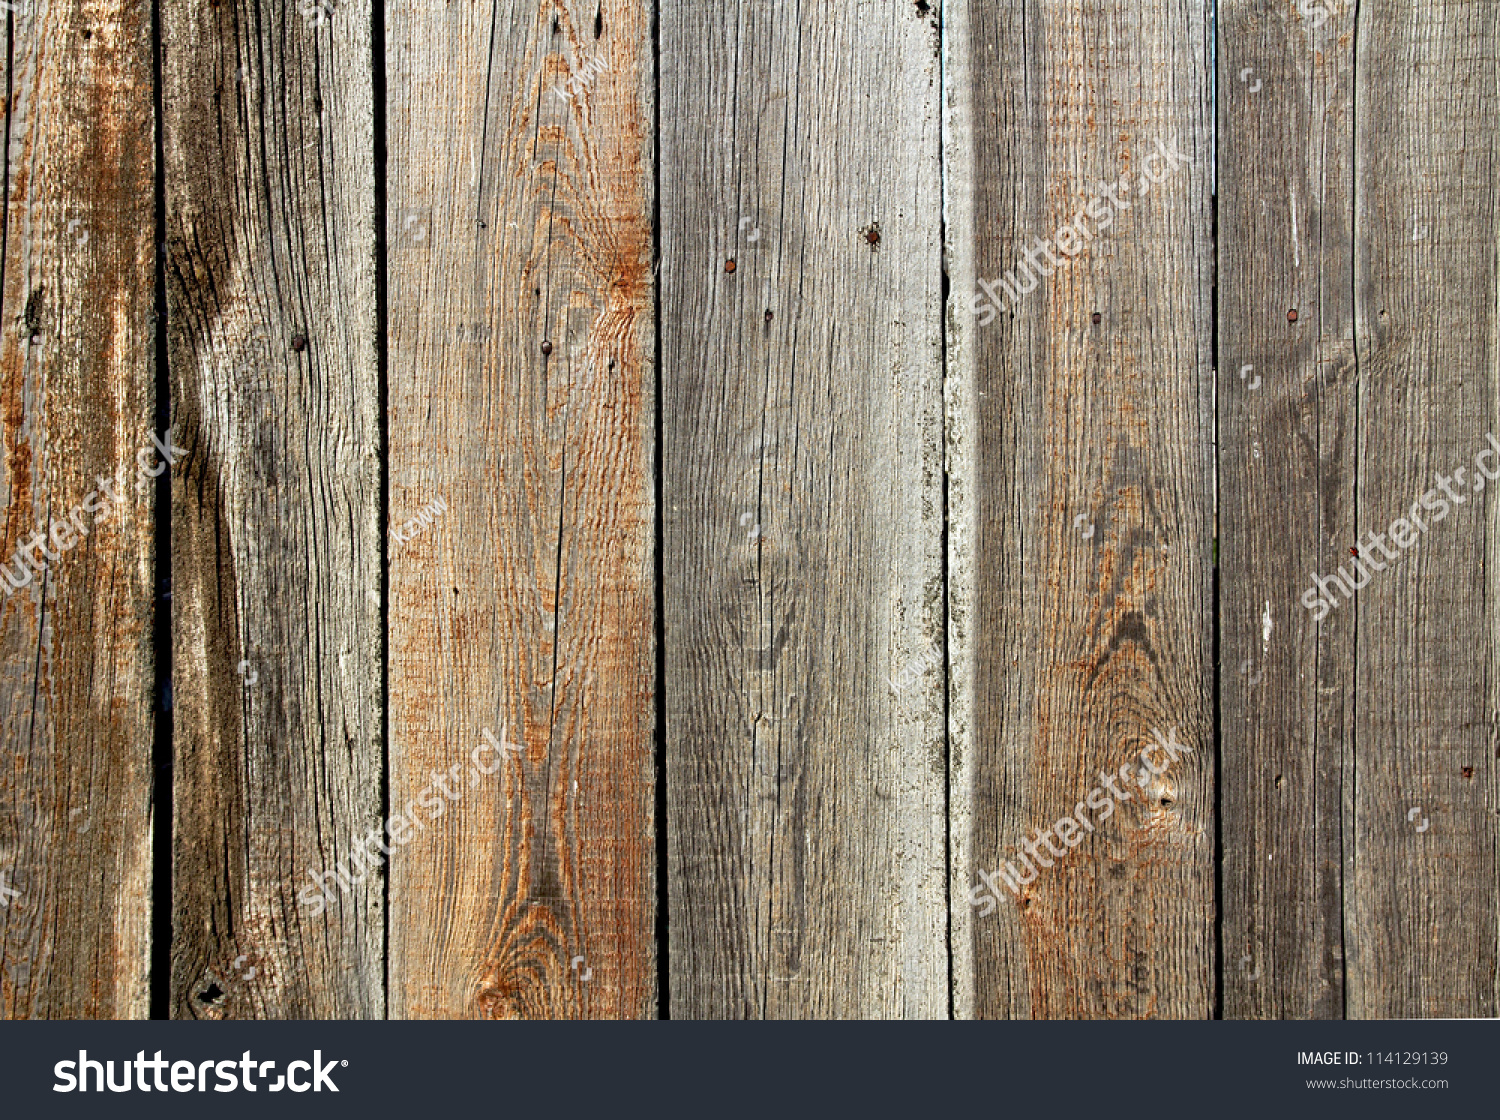 Old barn wood board stock photo 114129139 shutterstock for Where to buy old barn wood